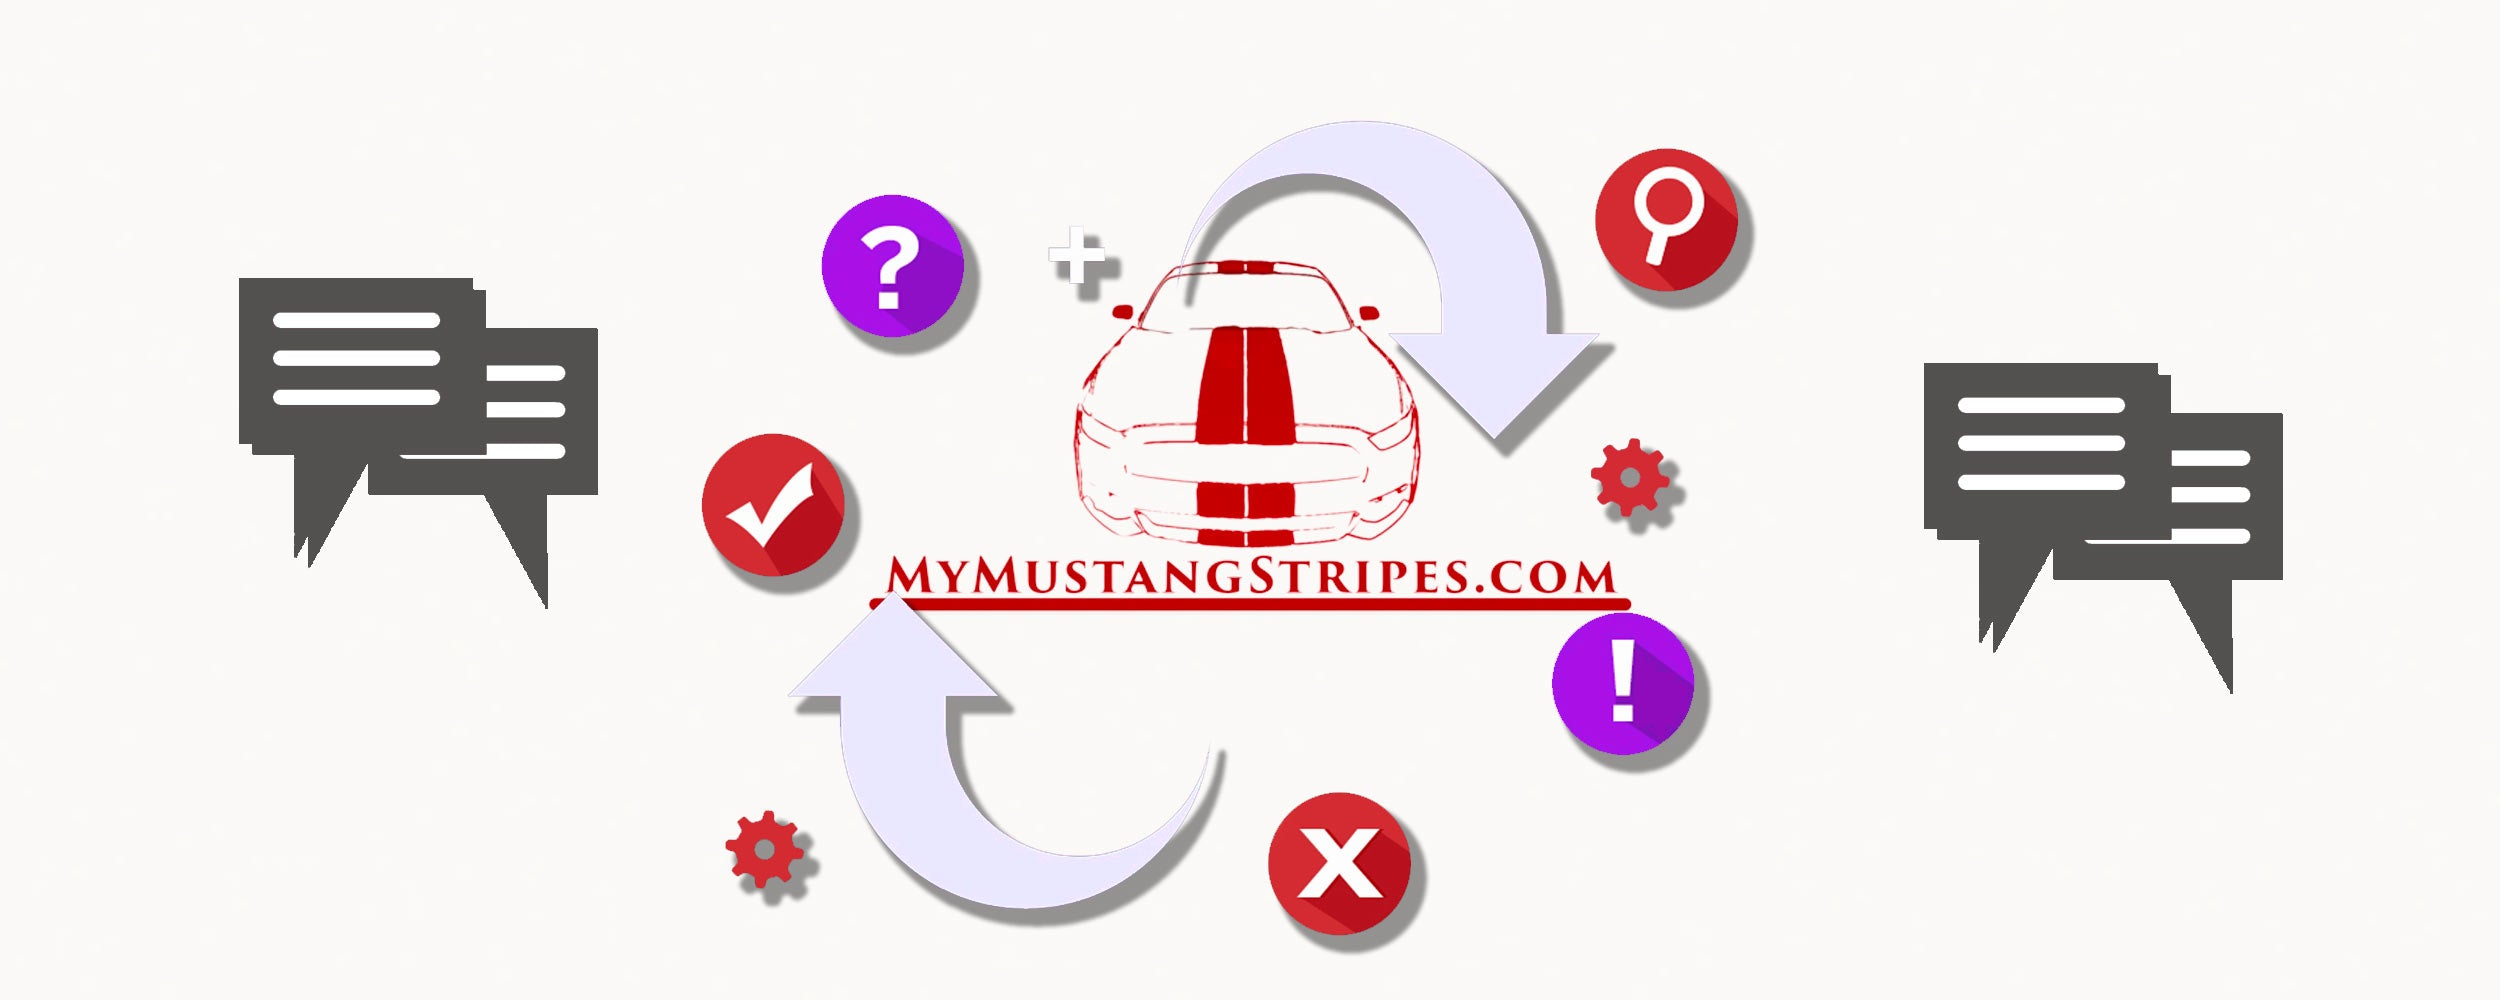 FAQ Frequently Asked Questions MyMustangStripes